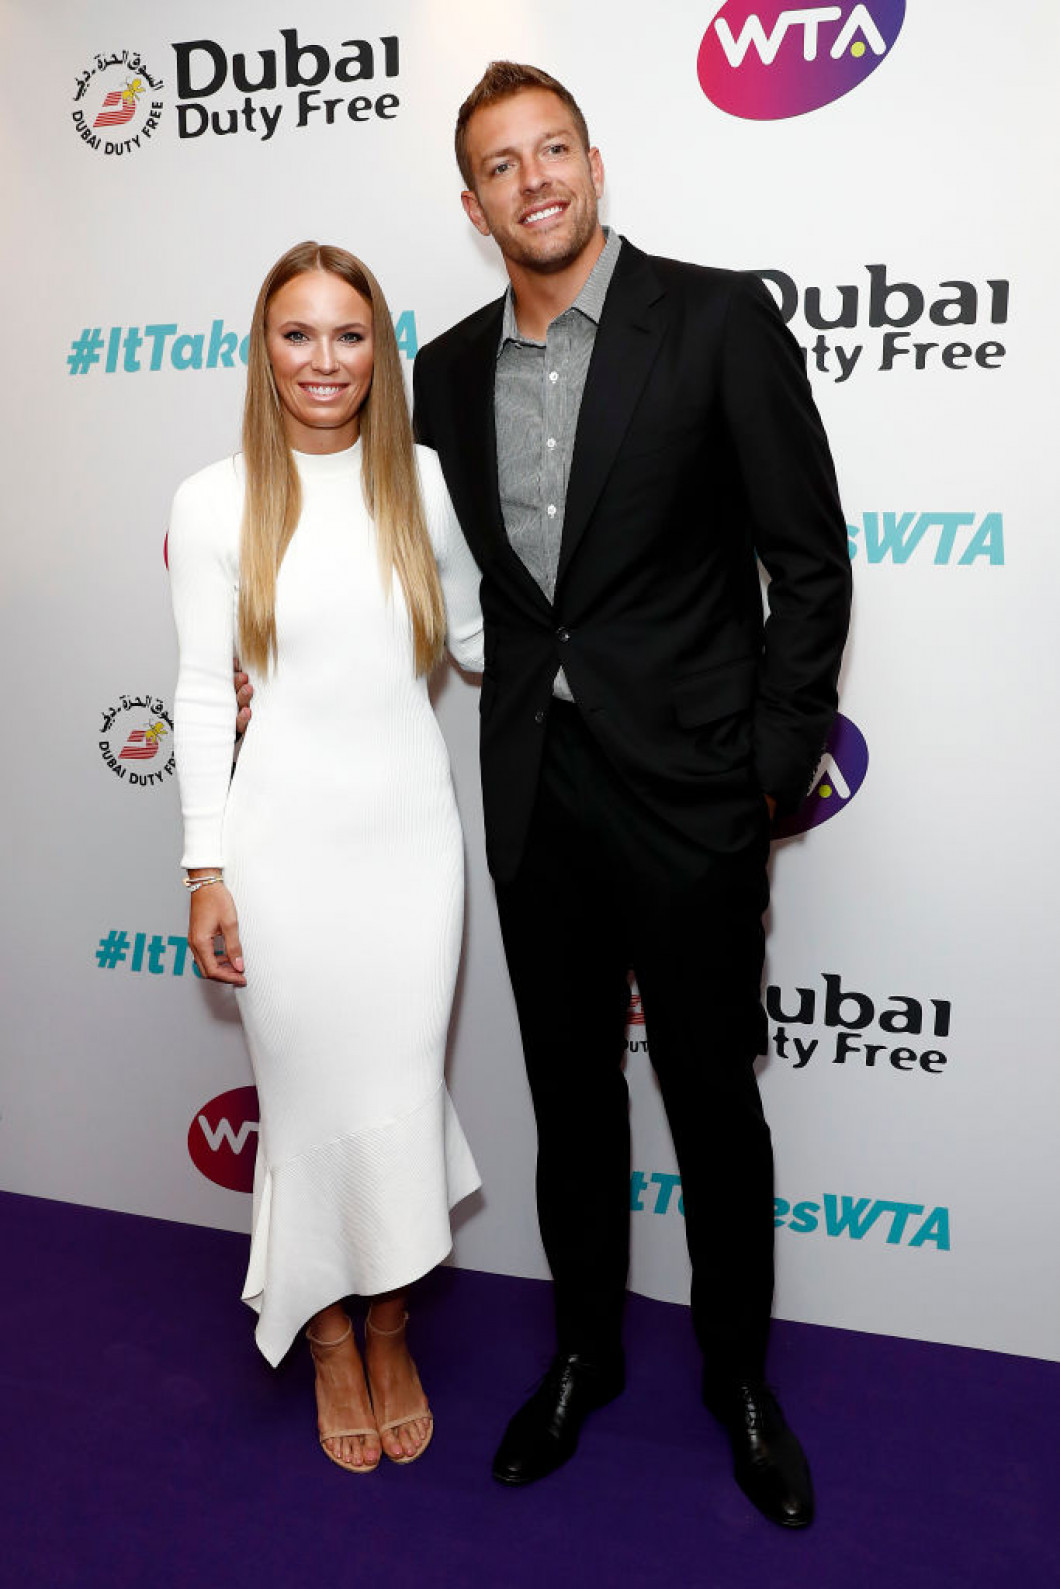 Dubai Duty Free WTA Summer Party 2019